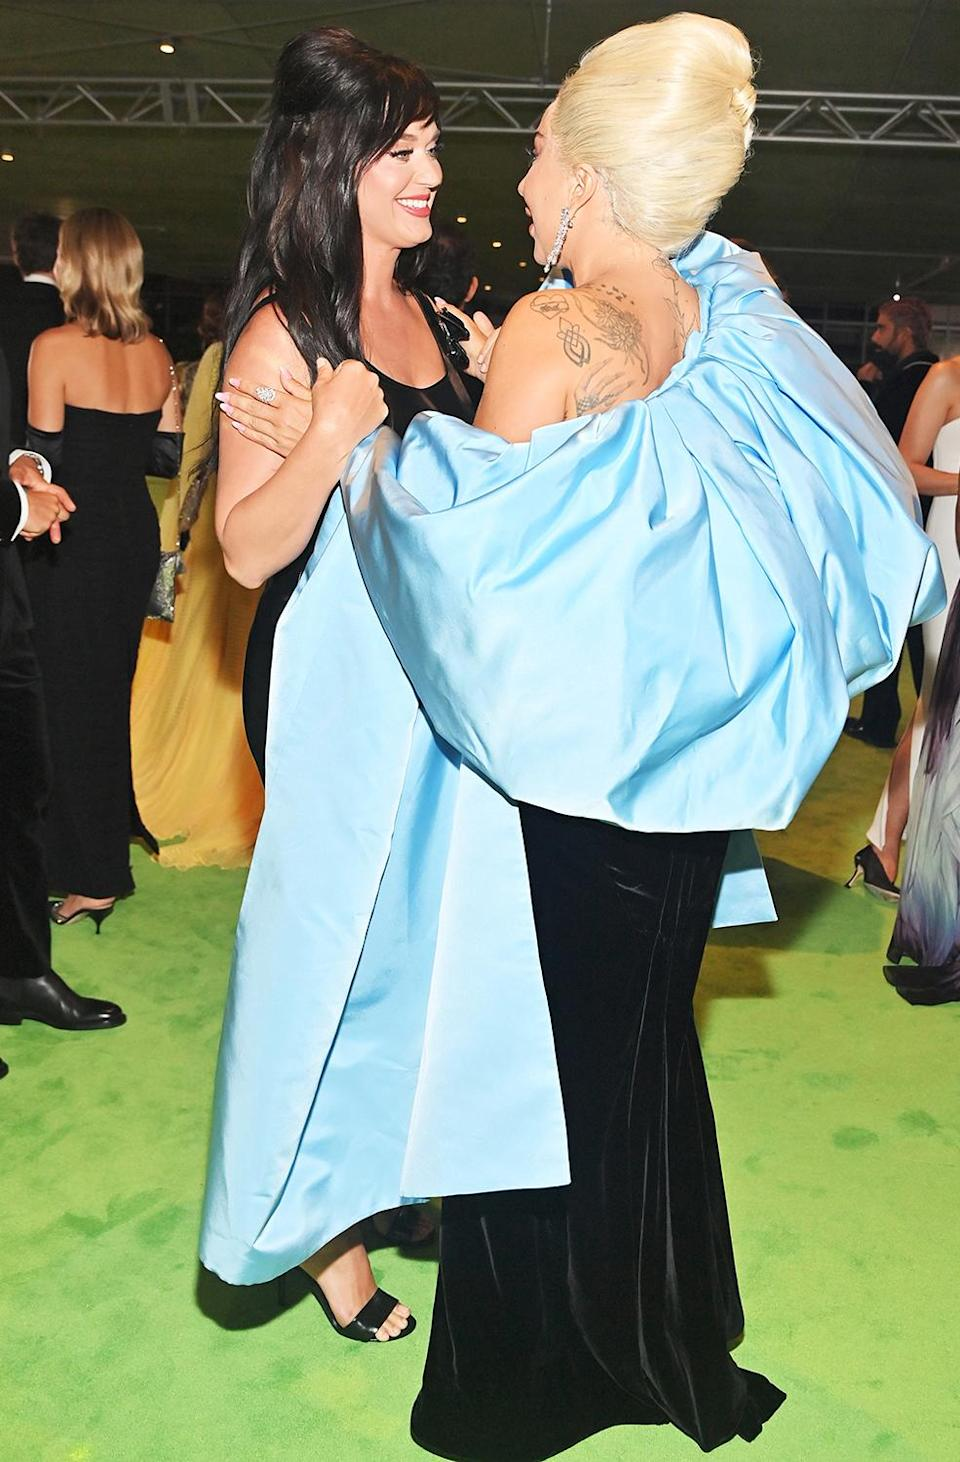 <p>Katy Perry and Lady Gaga share a sweet moment while attending the opening gala for the Academy Museum of Motion Pictures in Los Angeles on Sept. 25.</p>